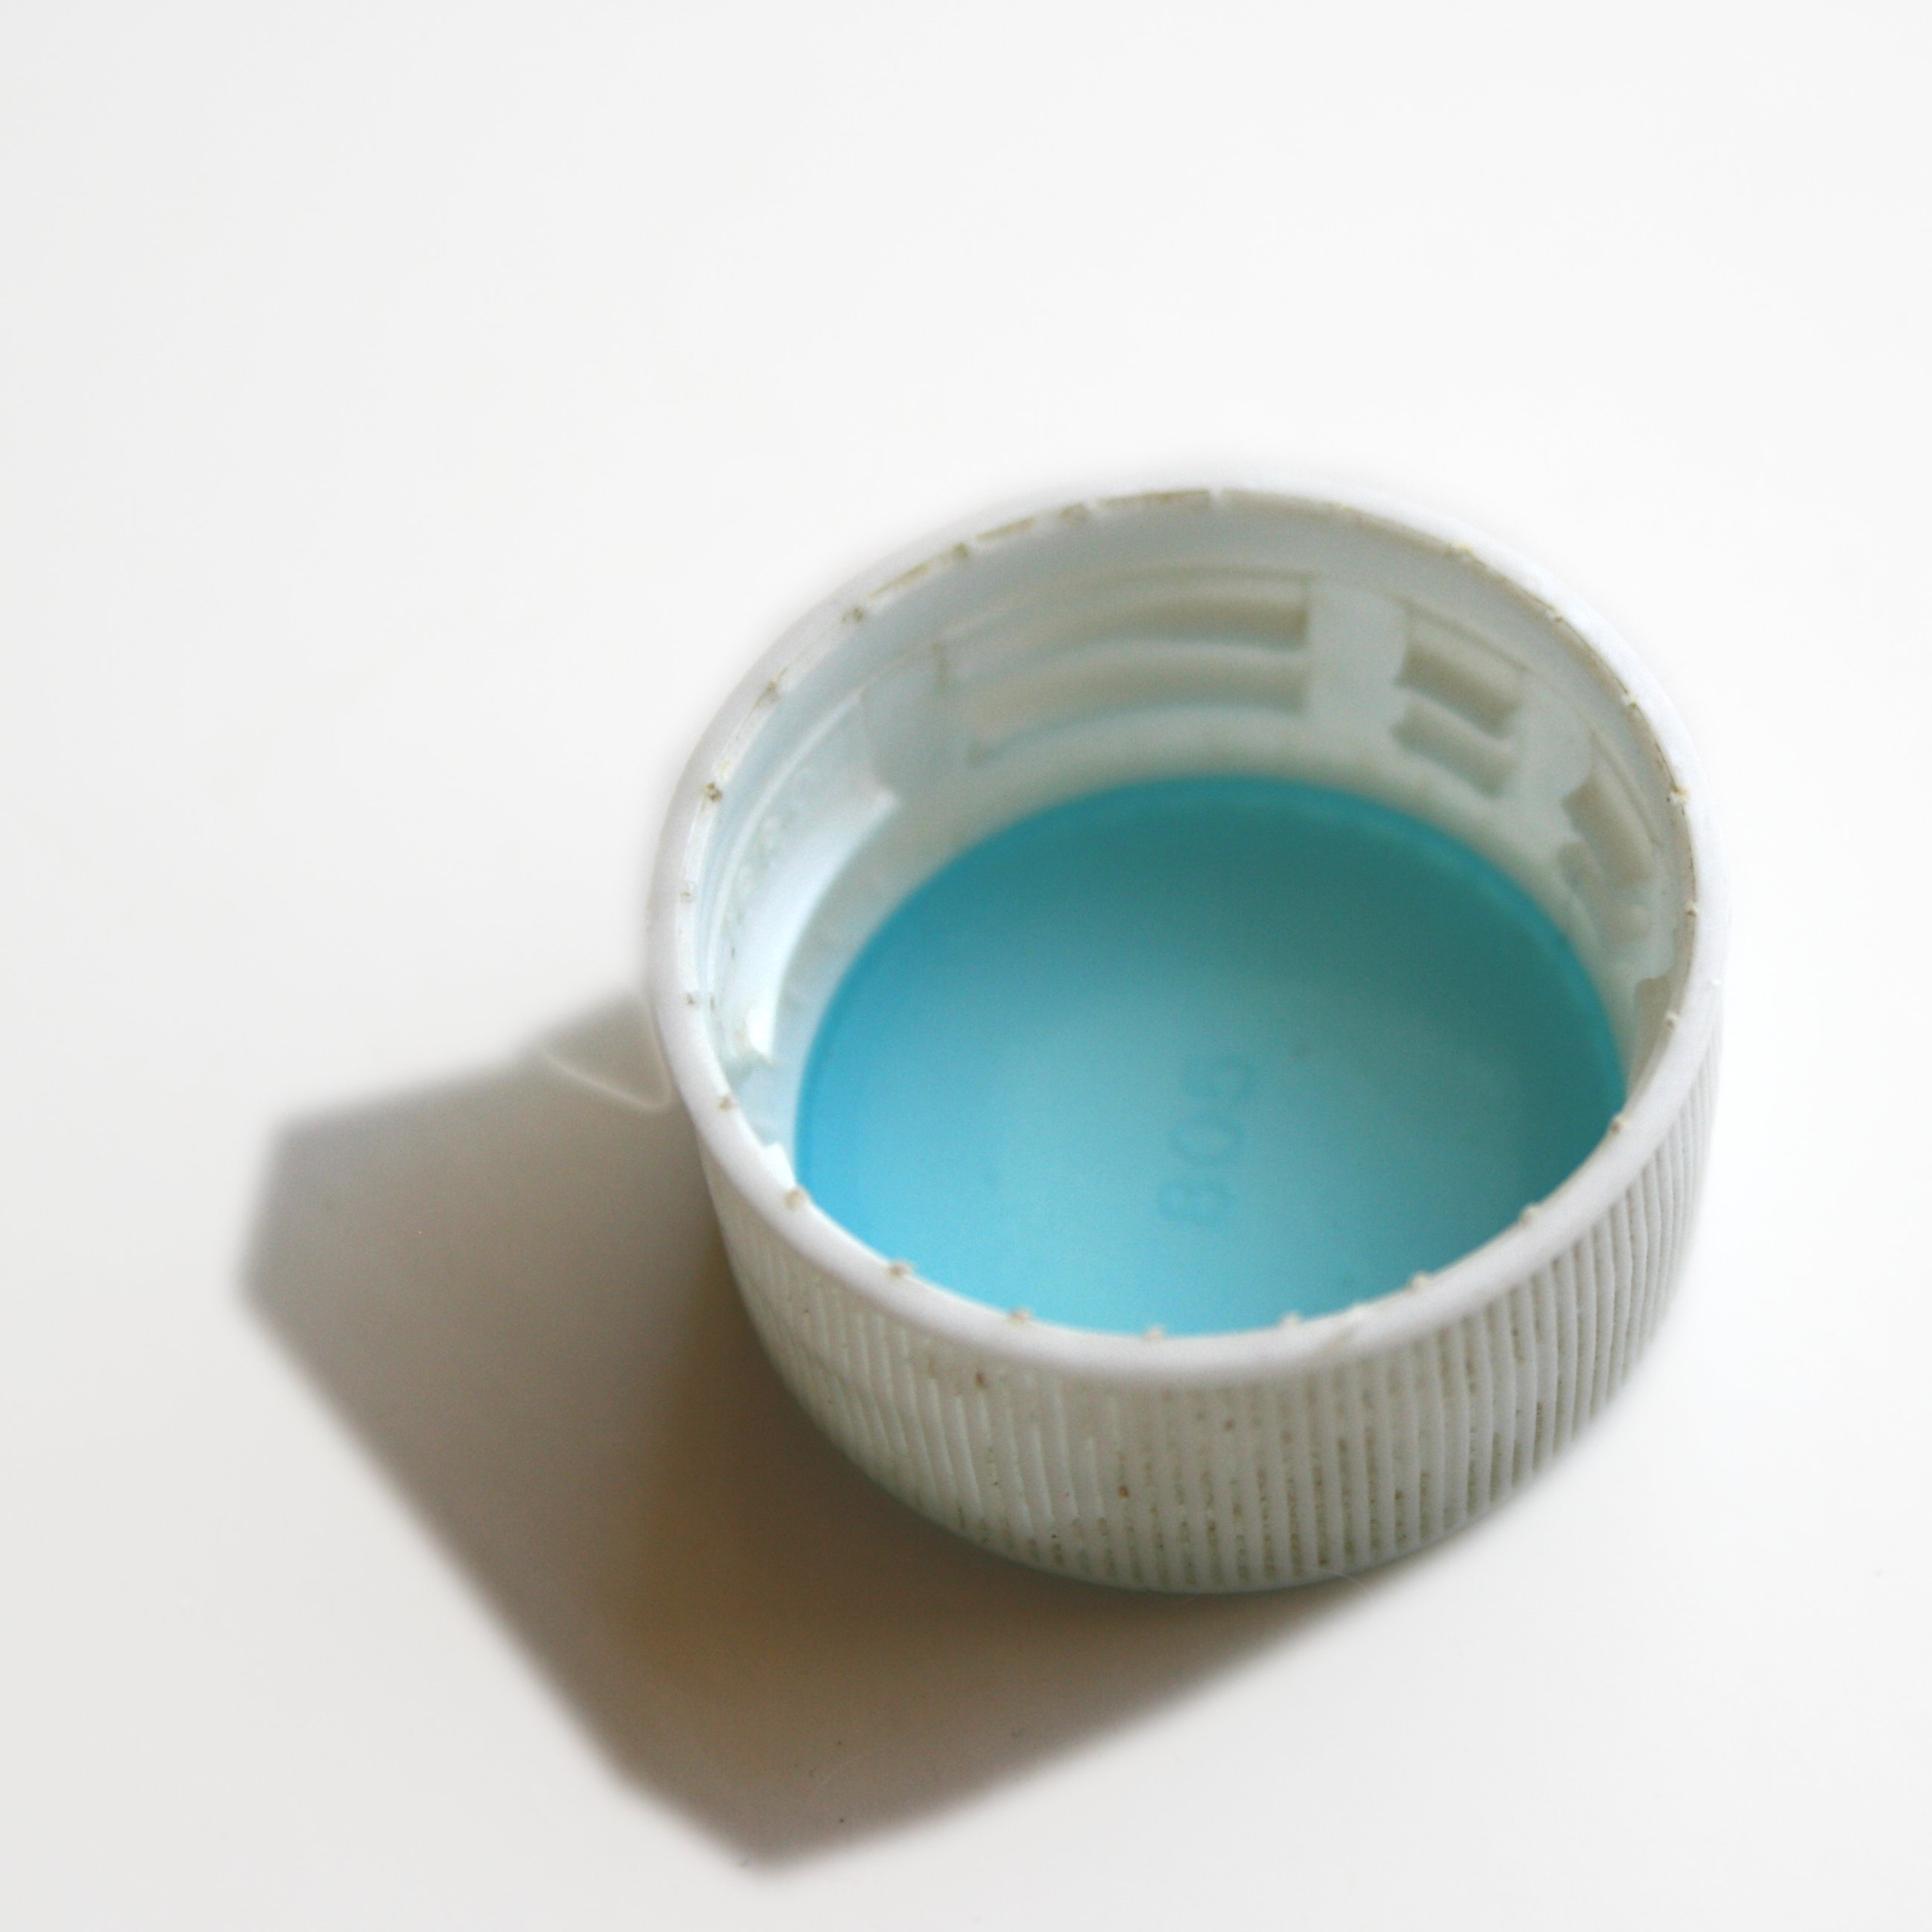 old plastic bottle cap picture free photograph photos